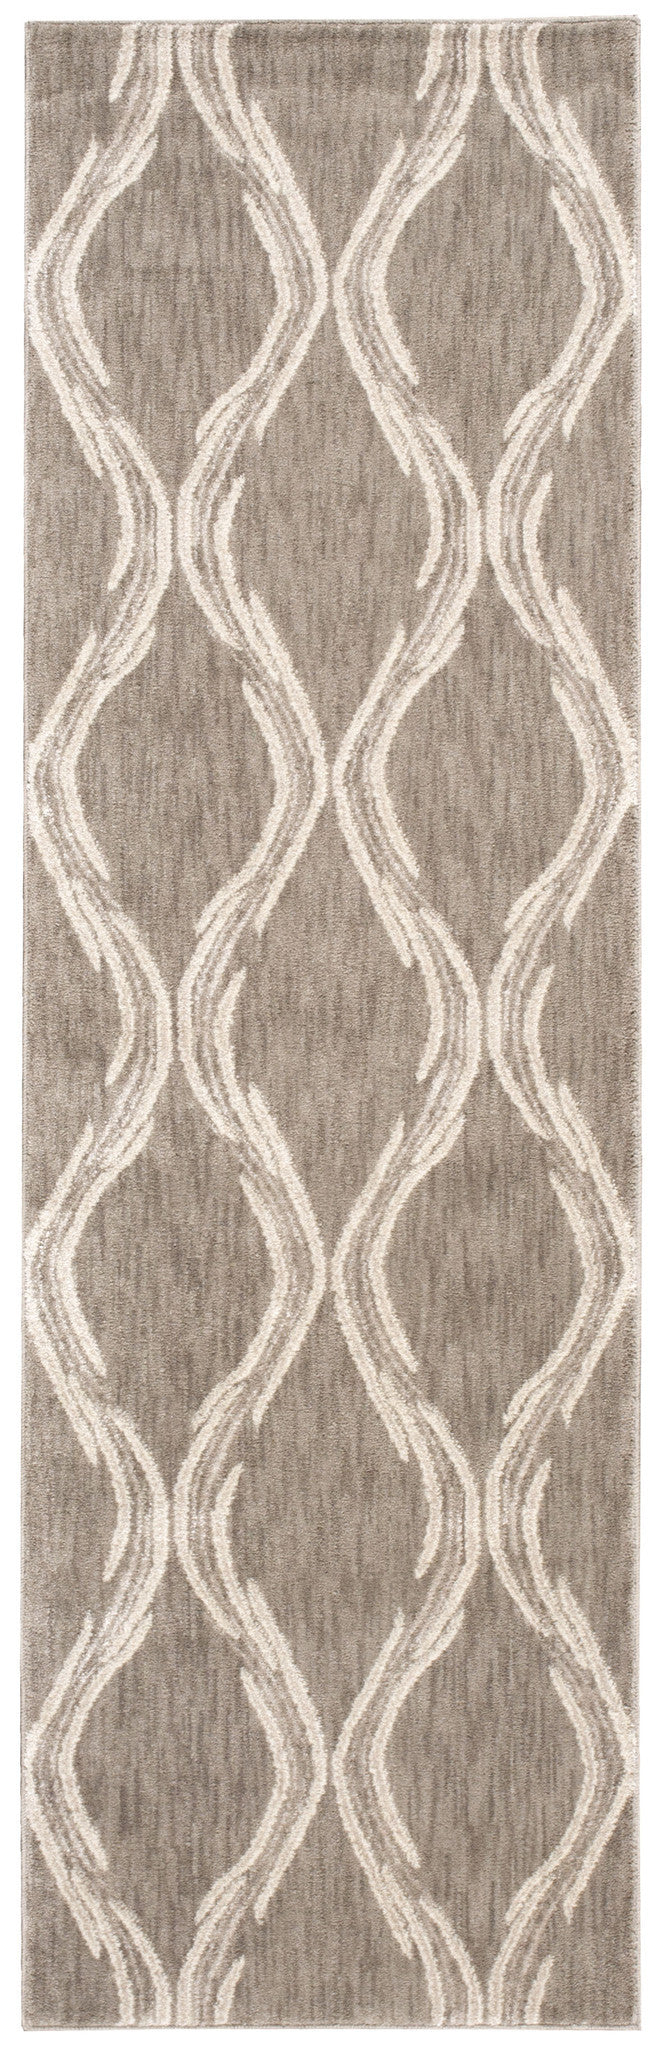 Nourison Tranquility Taupe Area Rug TNQ02 TAU